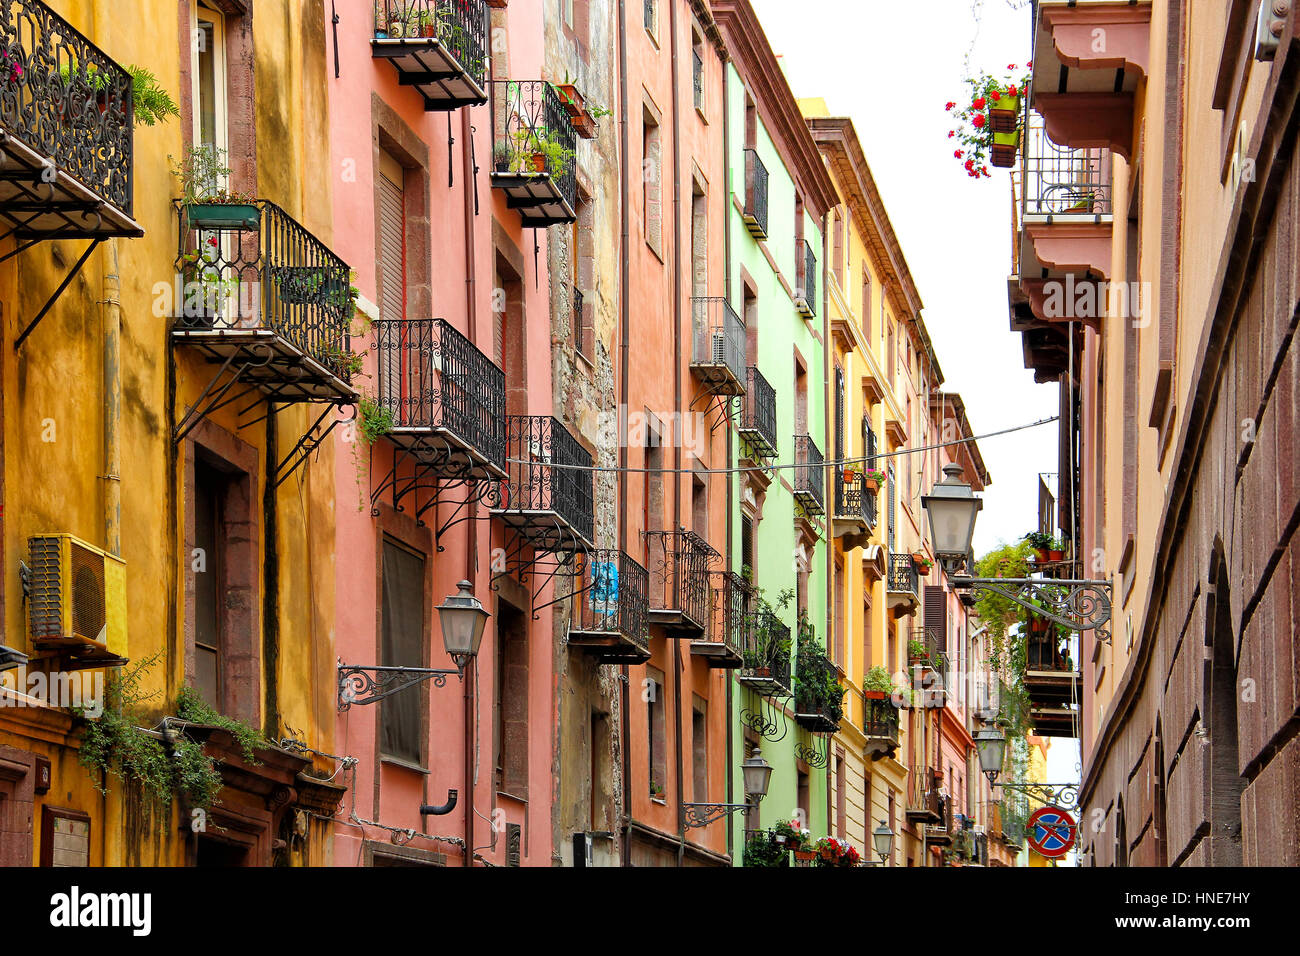 Colorful street in Bosa old town, Sardinia, Italy - Stock Image